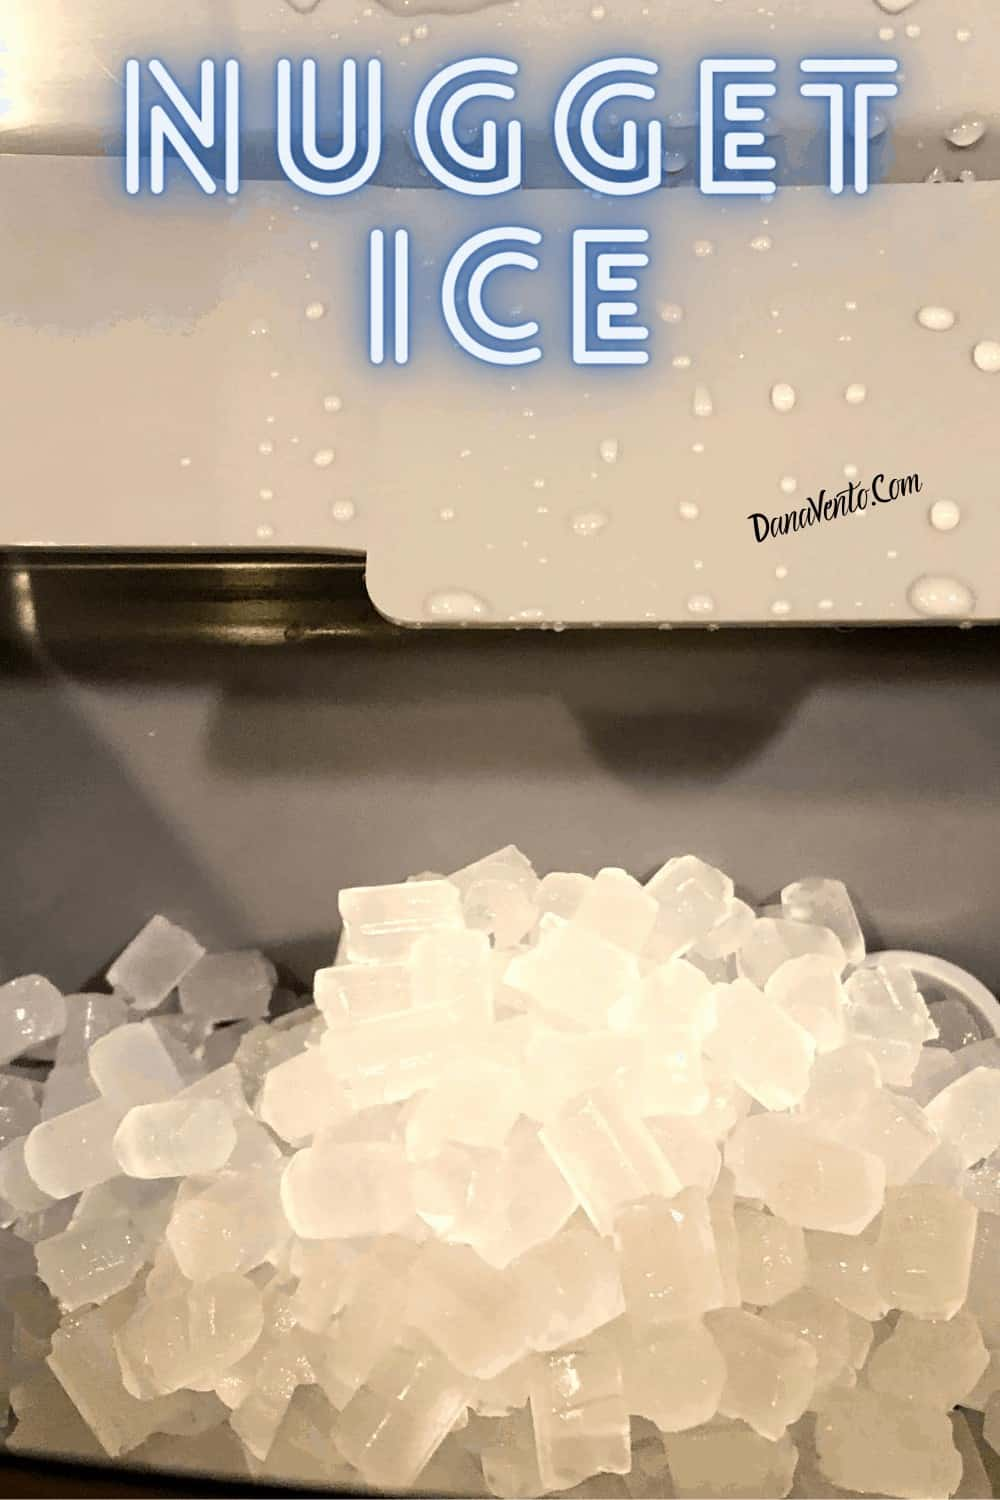 nugget ice made